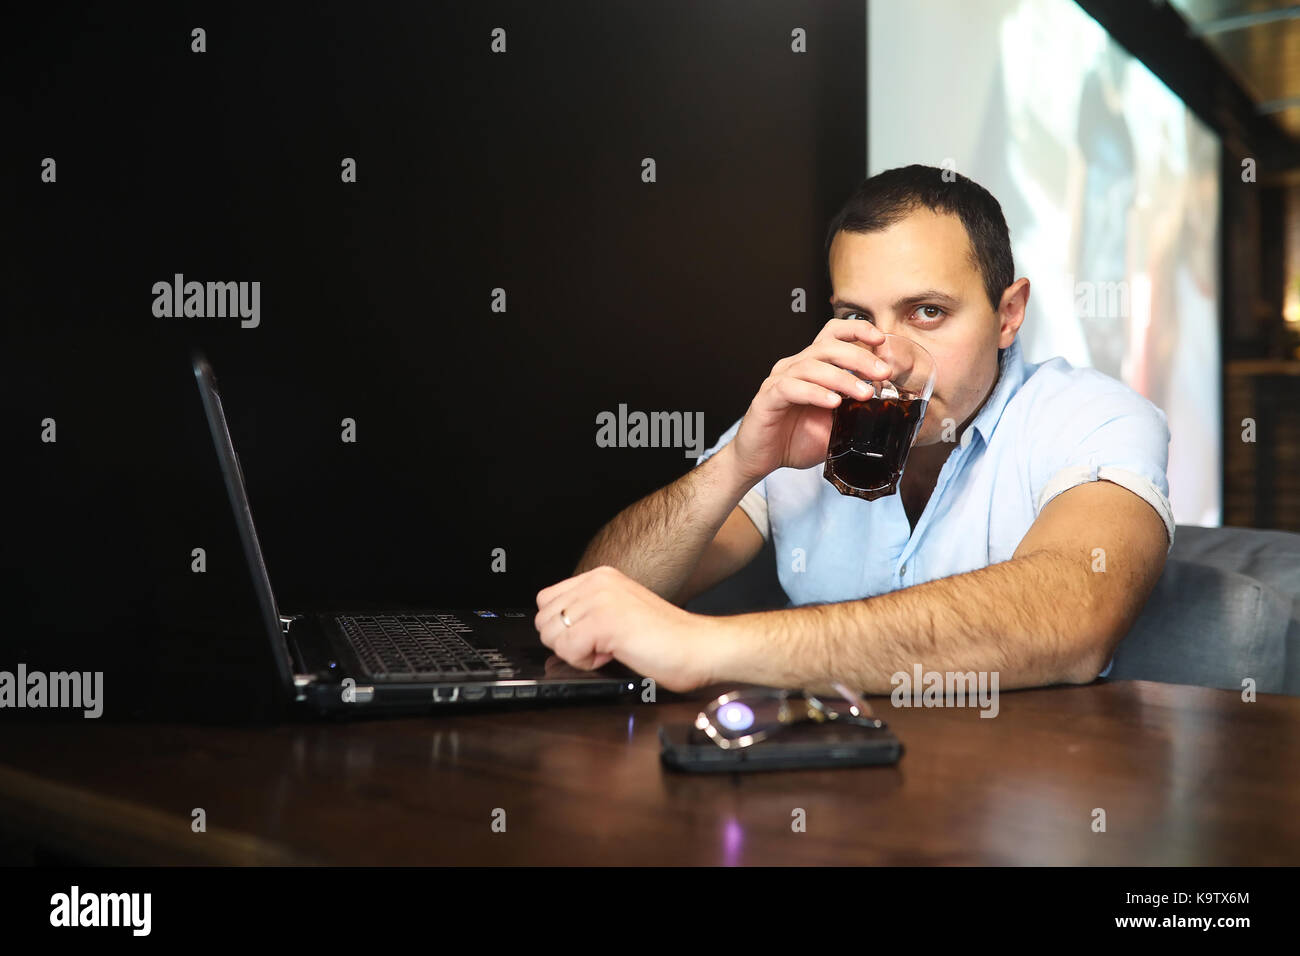 Armenian handsome man working behind laptop - Stock Image